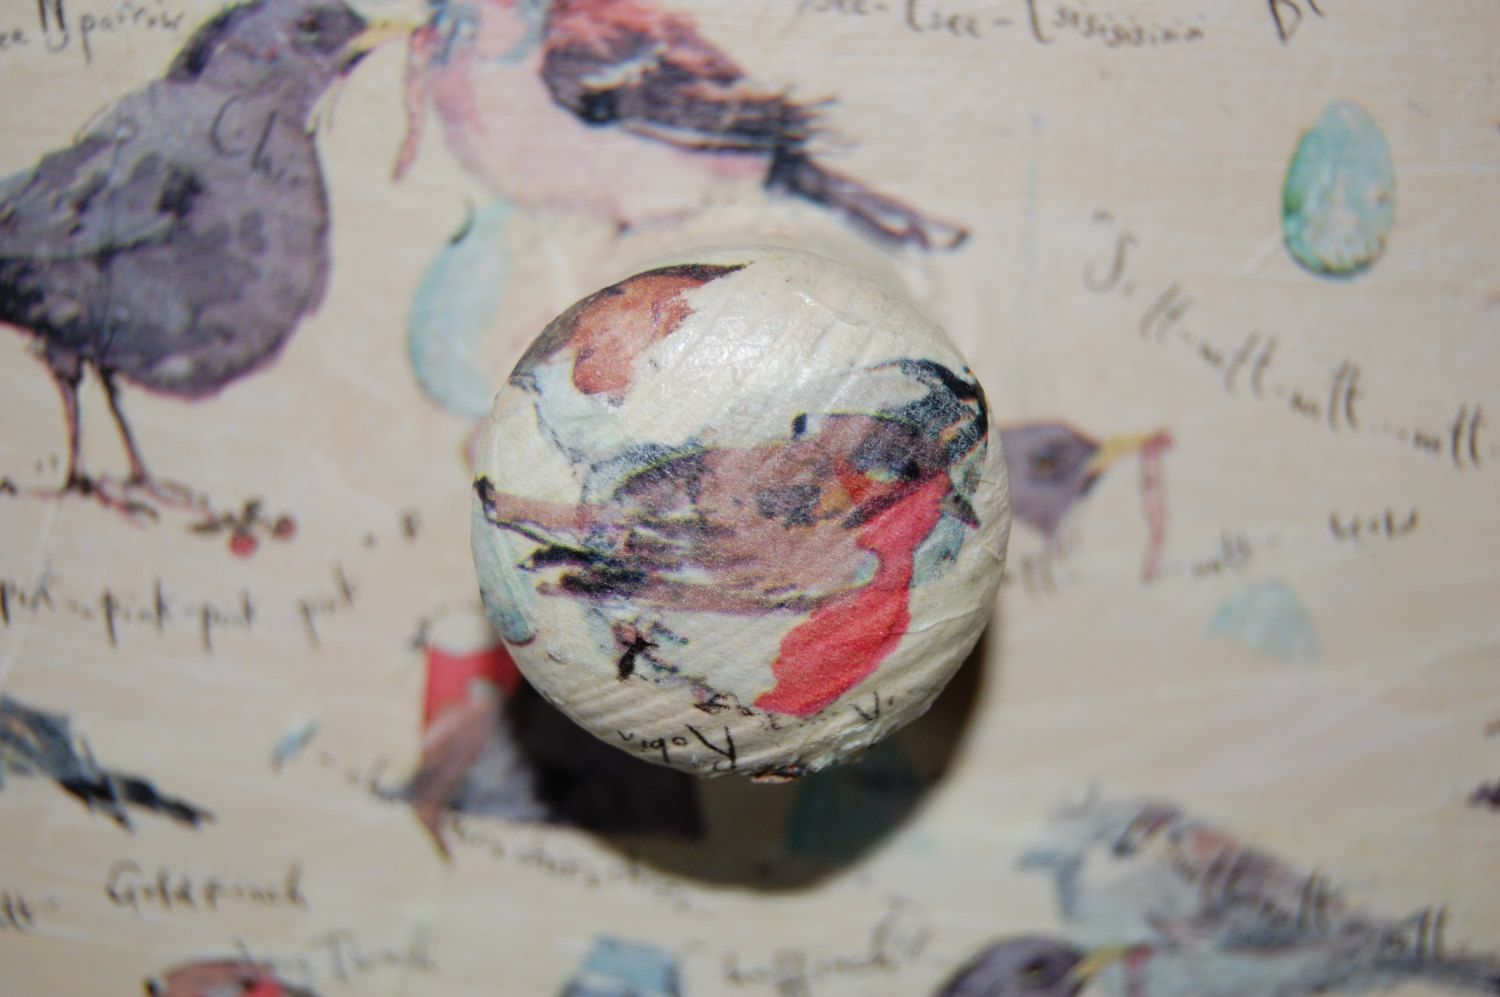 Decoupage Drawer Knob by KitschKats on Etsy https://www.etsy.com/listing/189910752/decoupage-drawer-knob